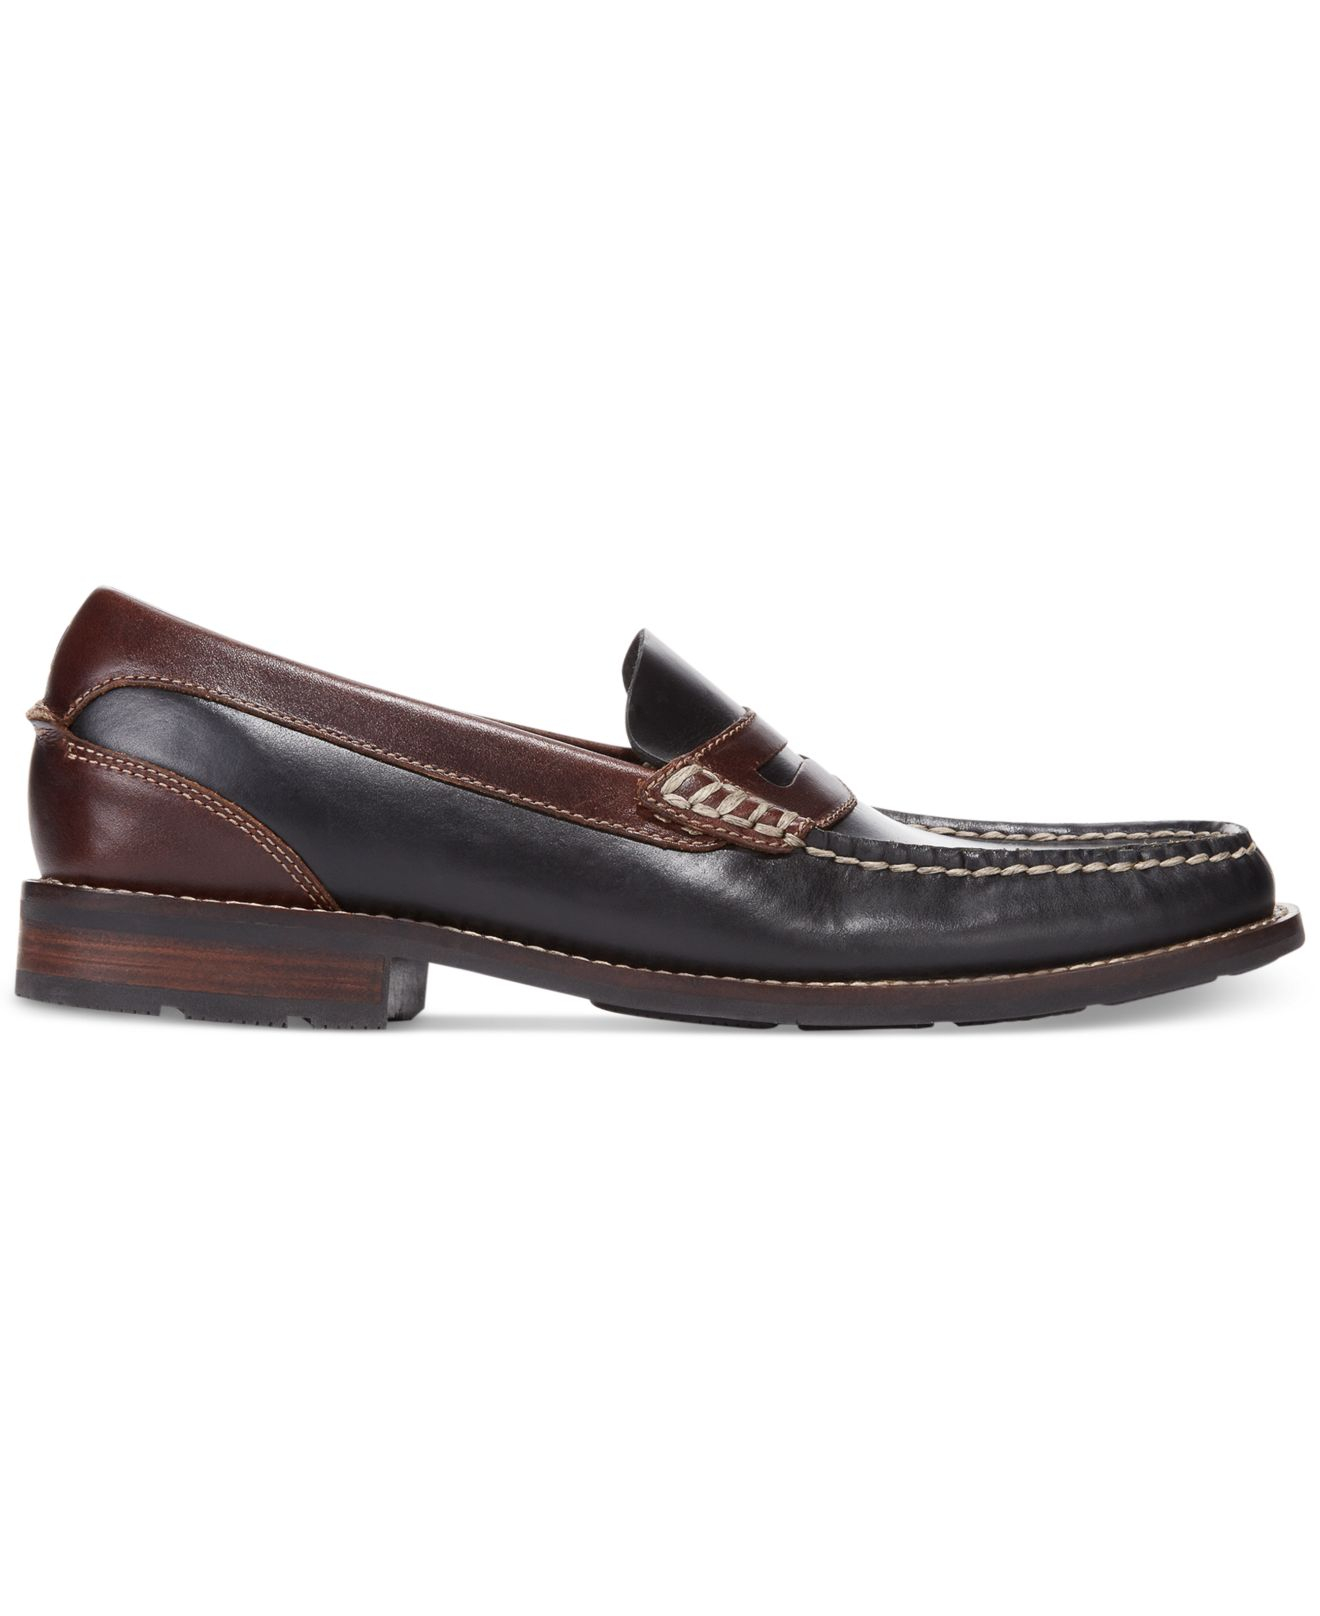 03a9549554d Lyst - Sperry Top-Sider Essex Penny Loafers in Black for Men